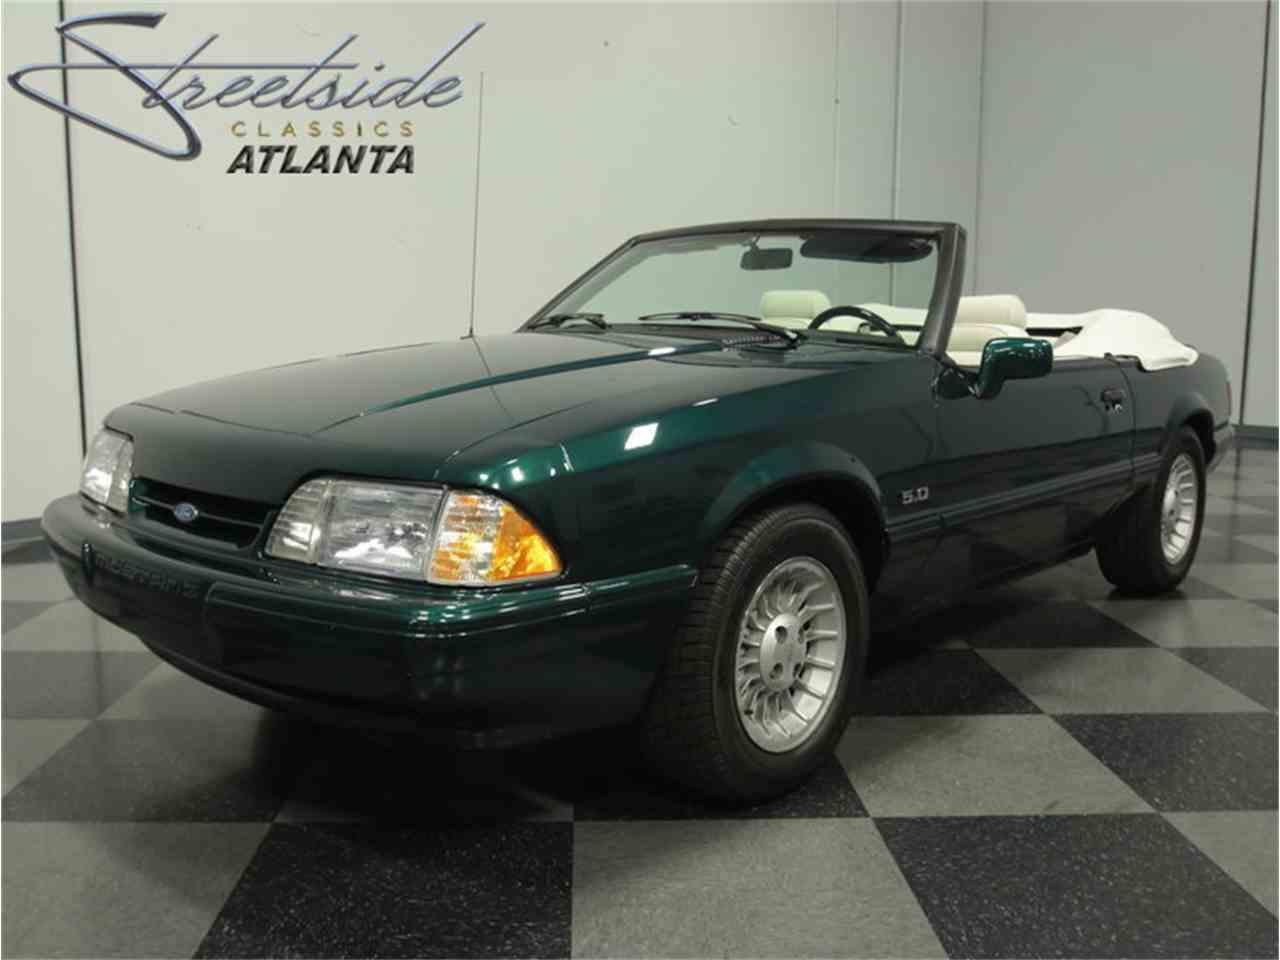 1990 Ford Mustang LX 7-UP Edition for Sale - CC-875818